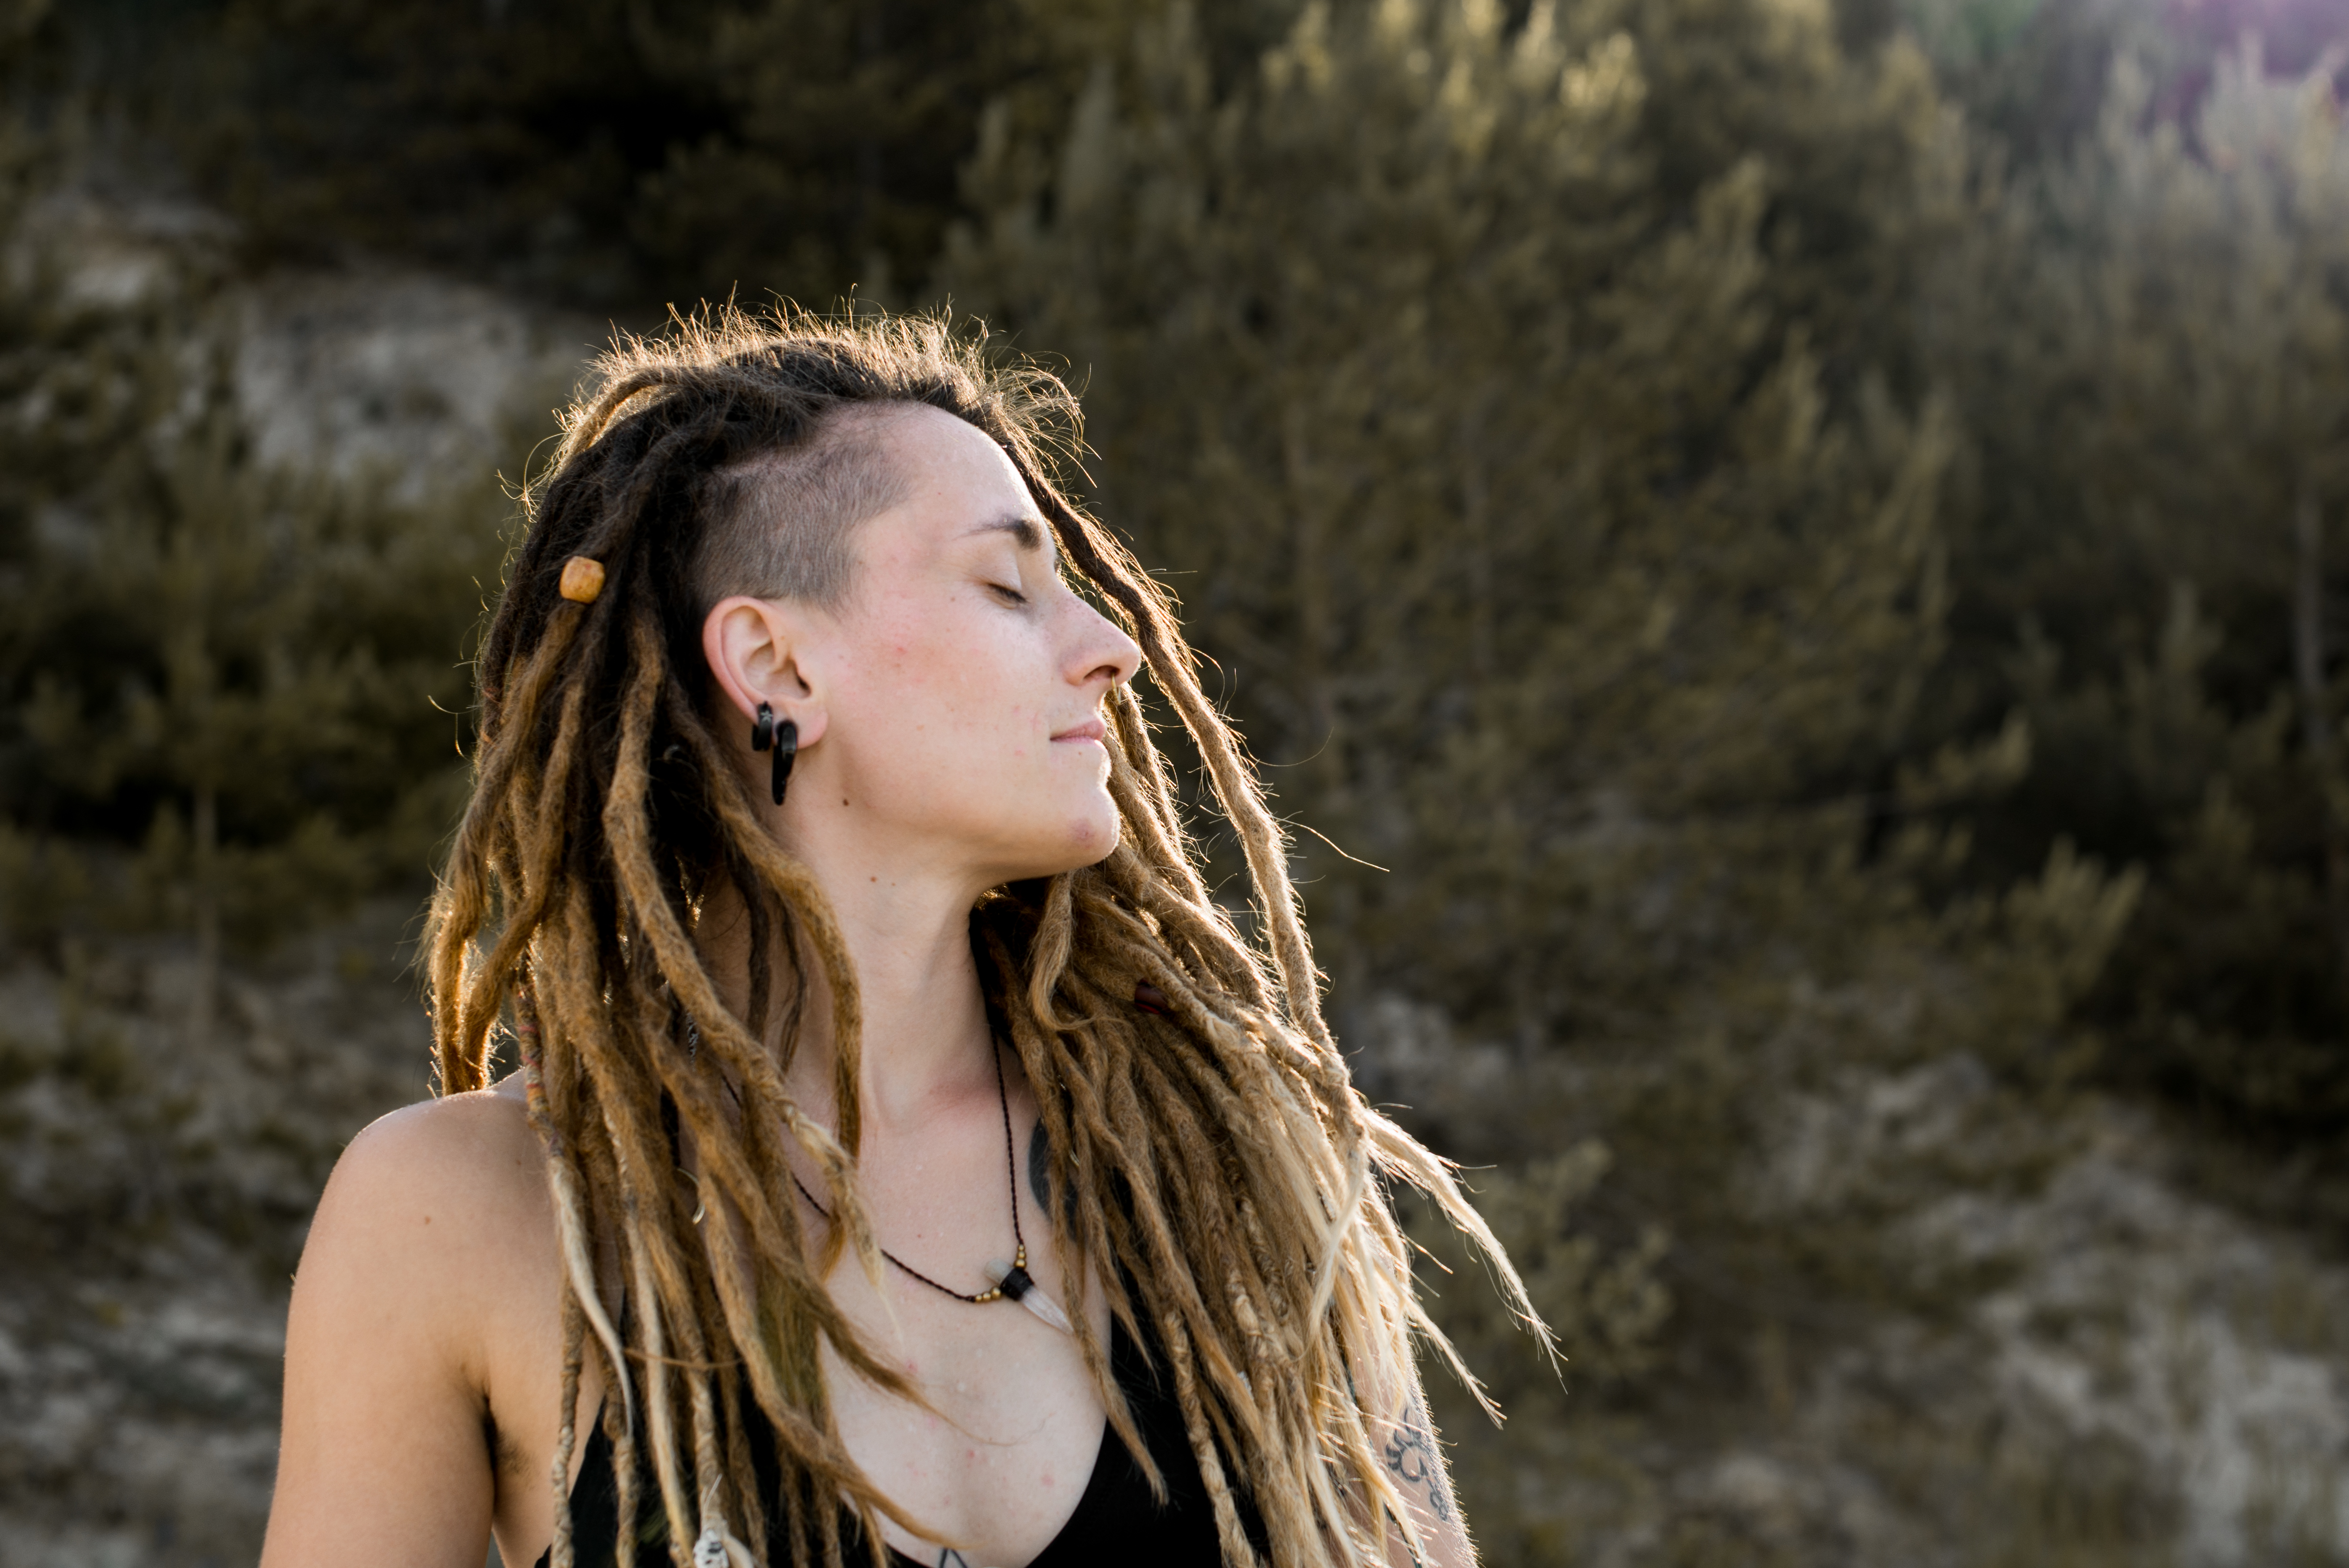 Dreads Auf Reisen Dreadlocks Am Strand Dreadfactory